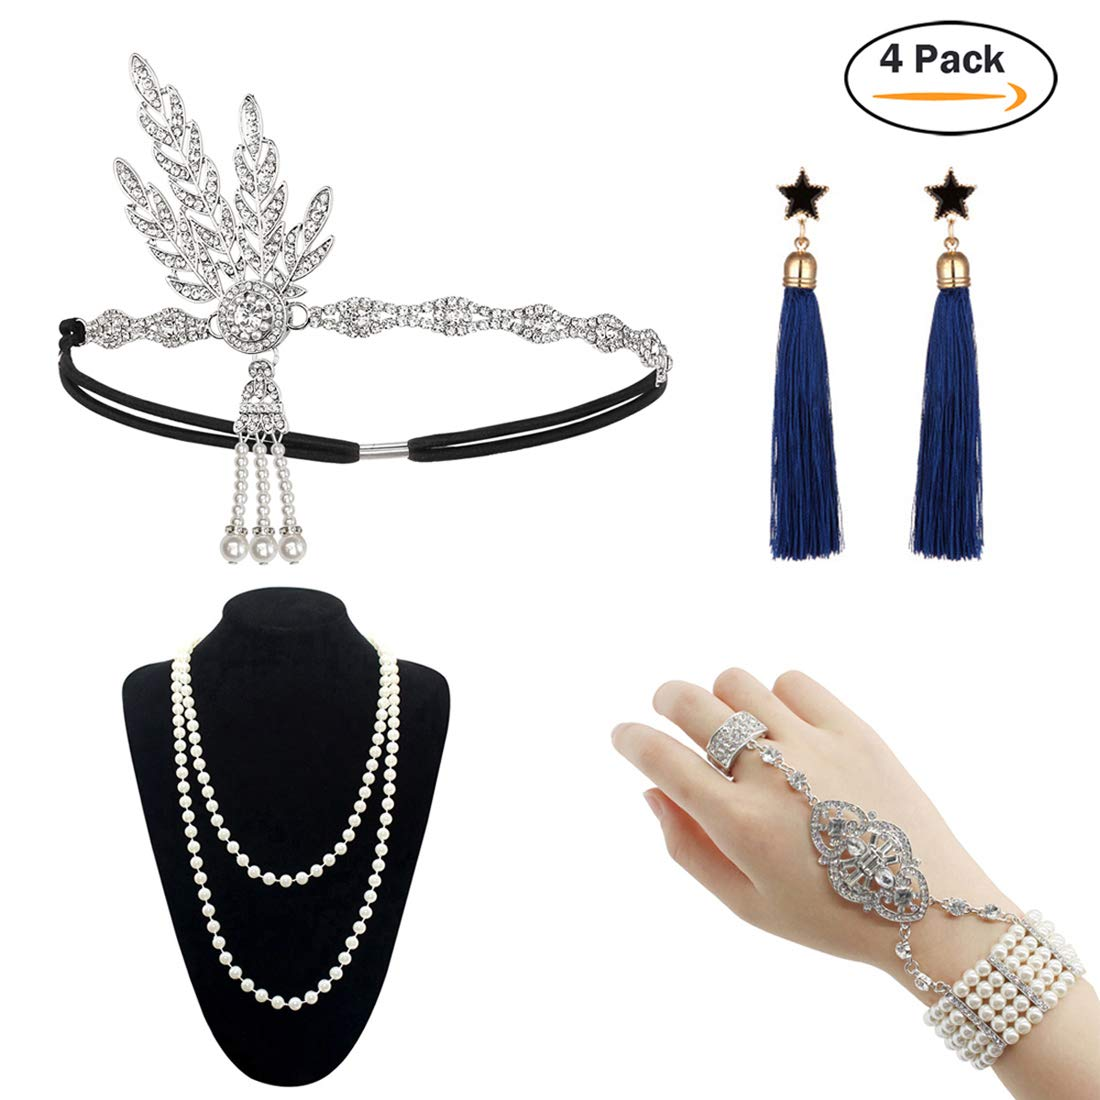 HAMIST 1920s Accessories Set Great Gatsby - for Women Headband Bracelet Pearl Necklace Earring for Party (4Pack-Sliver)